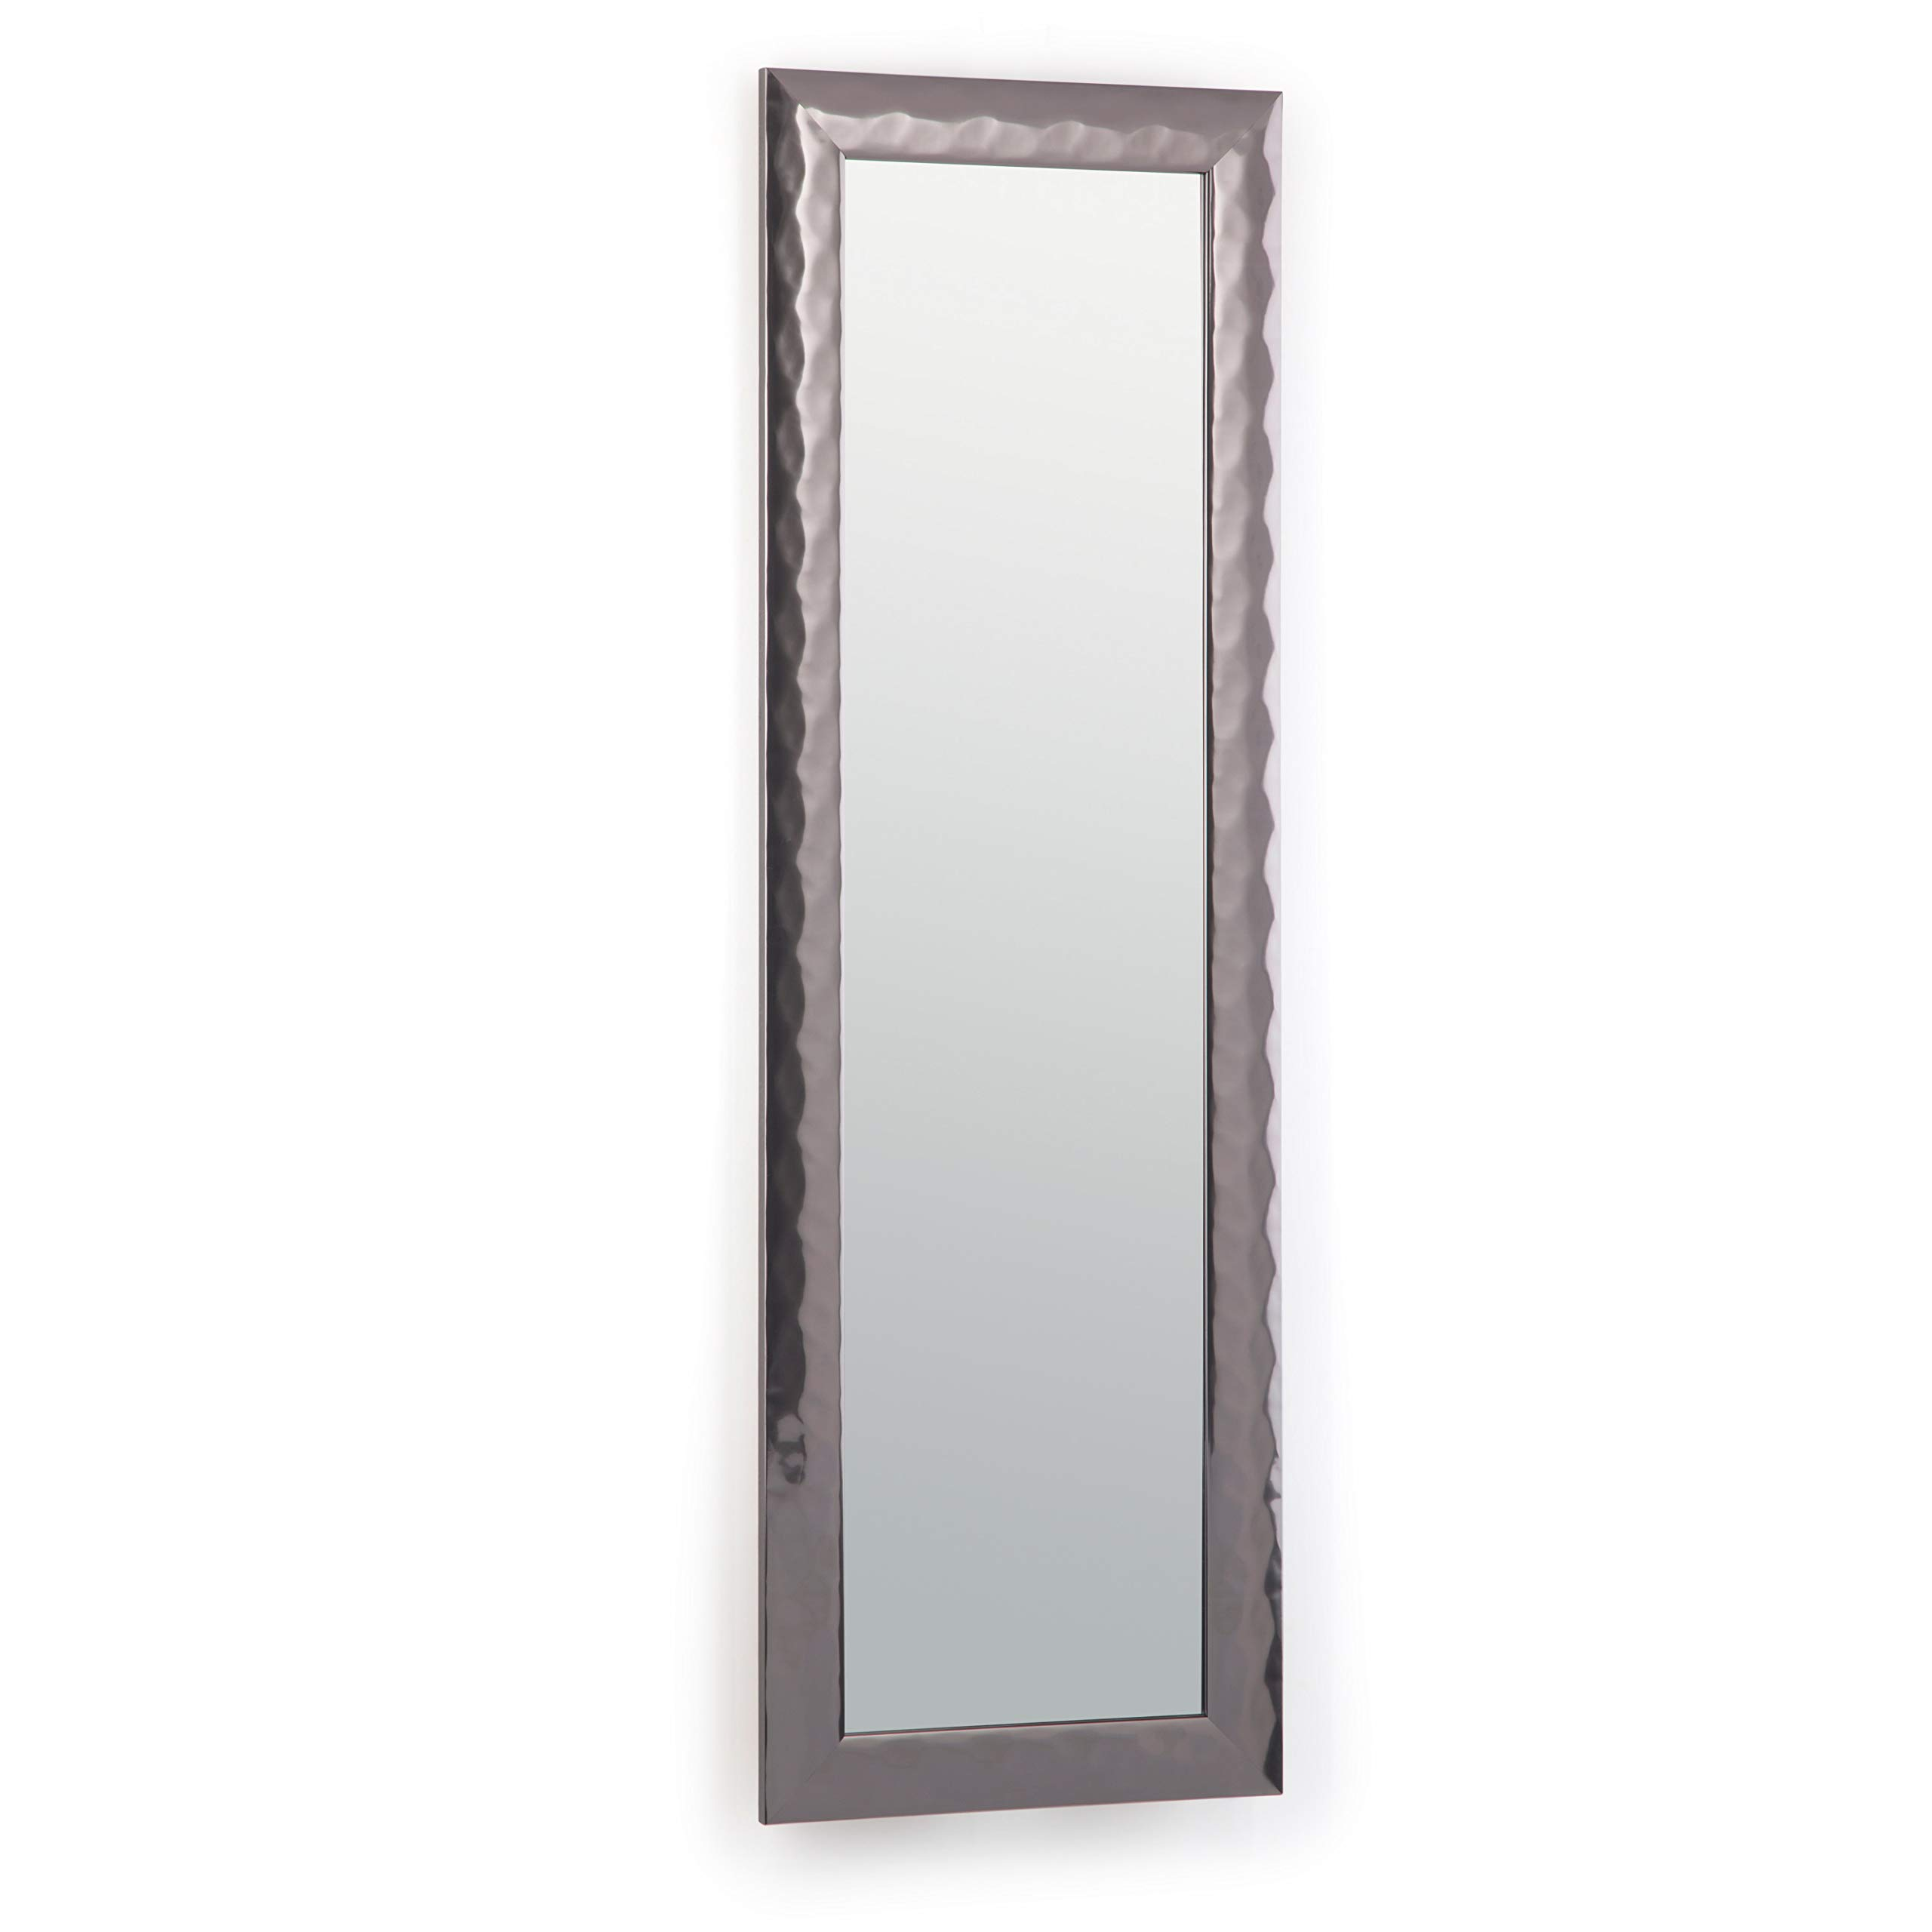 Simpli Home AXCMATH-5317 Athena 53 inch x 17 inch Rectangular Transitional Large Décor Mirror in Pewter